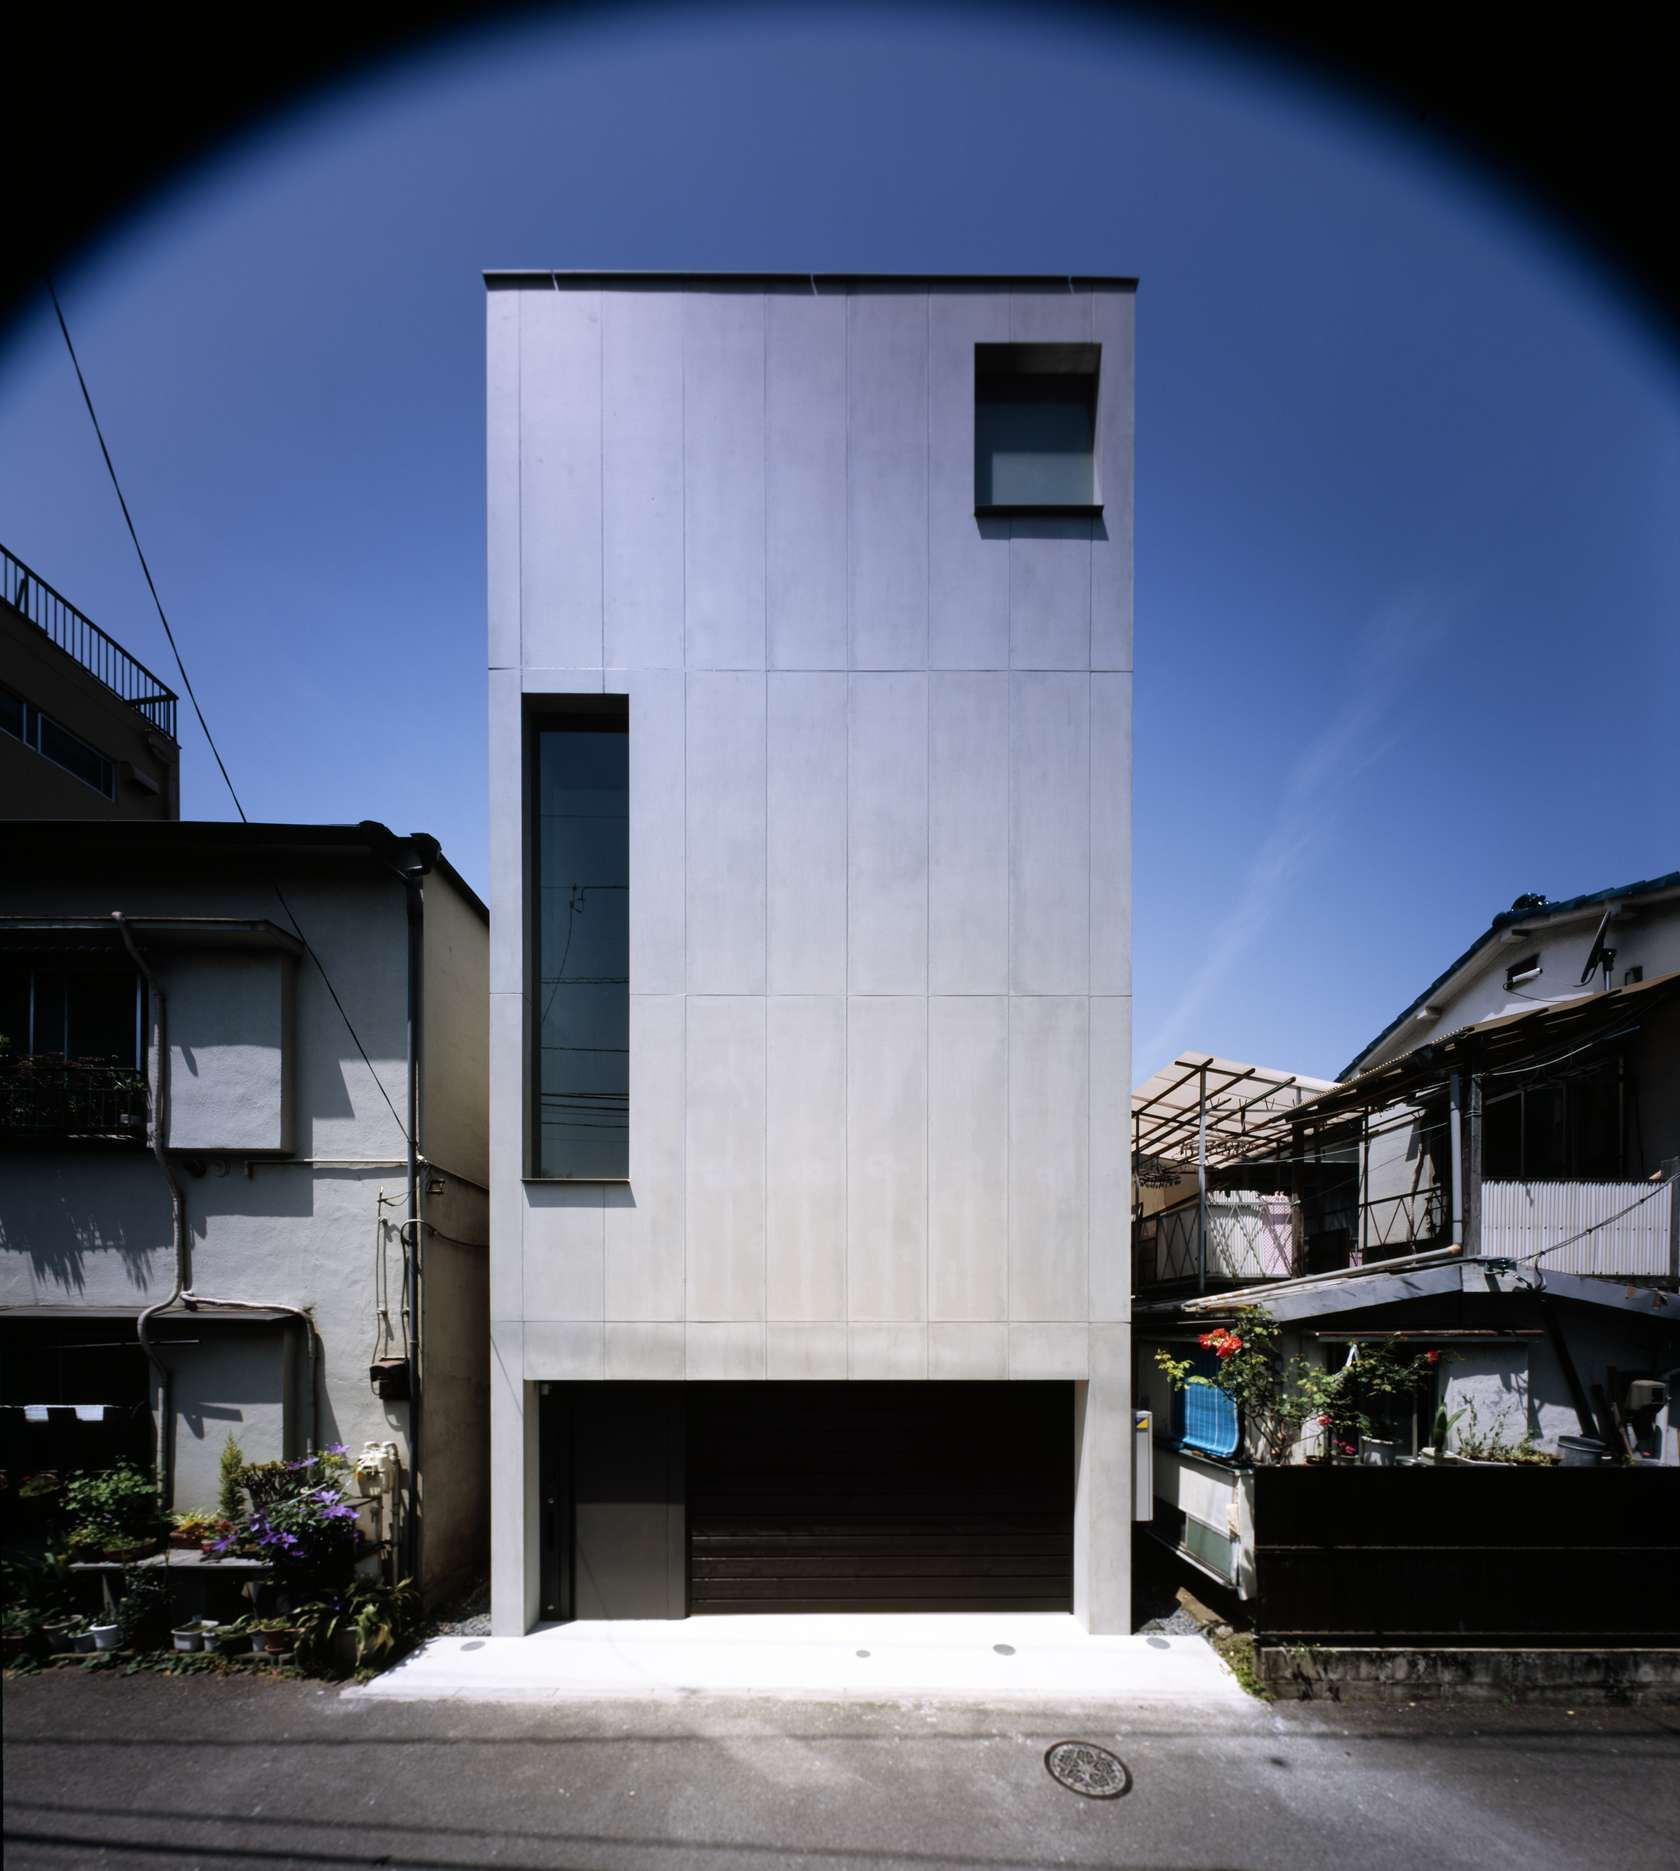 2 Courts House Is Built On A Typical Central Tokyo Site U2013 Small, Narrow